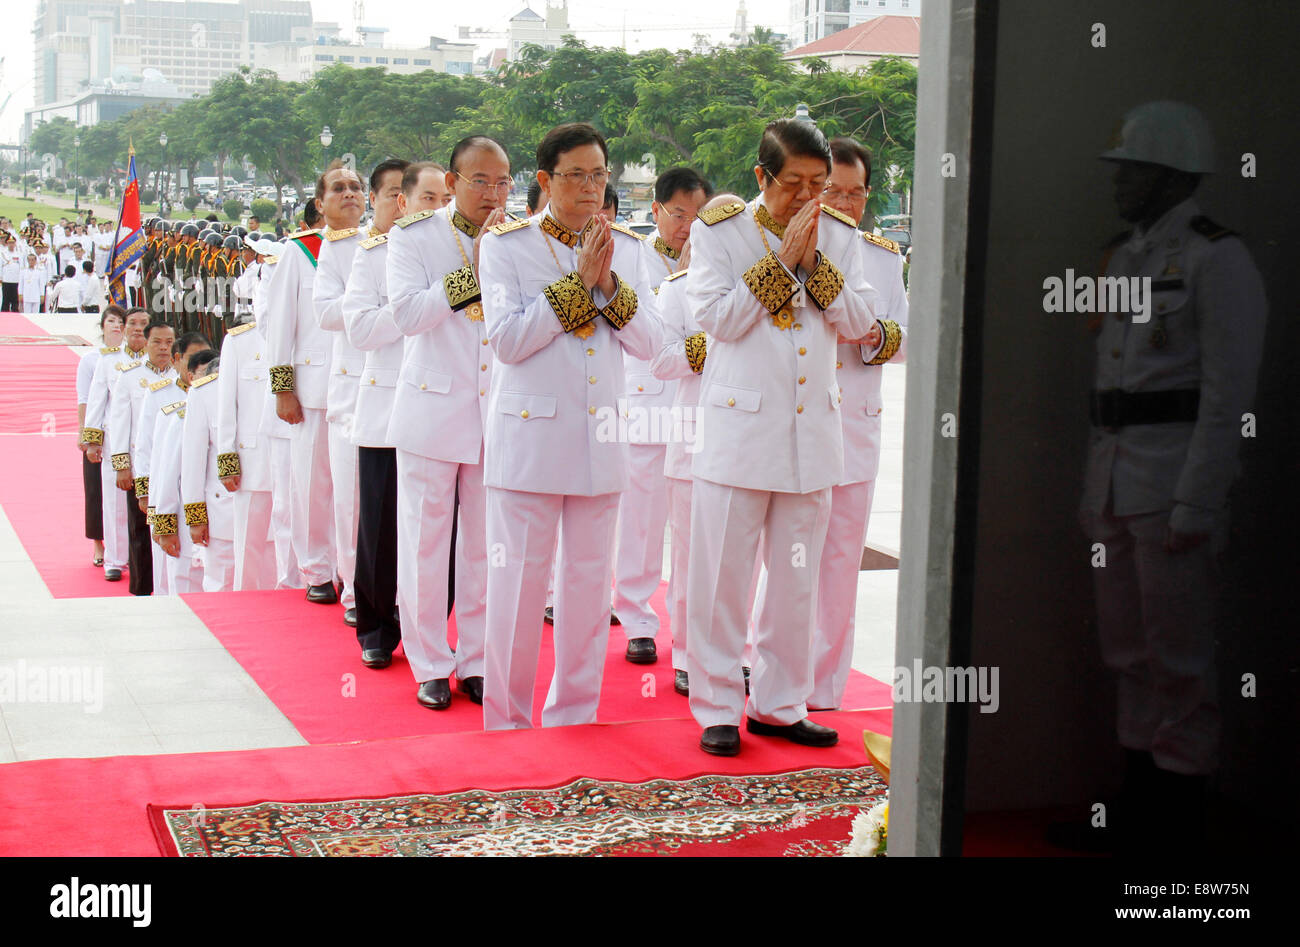 Phnom Penh, Cambodia. 15th Oct, 2014. Cambodian senior officials pay homage to late King Father Norodom Sihanouk - Stock Image